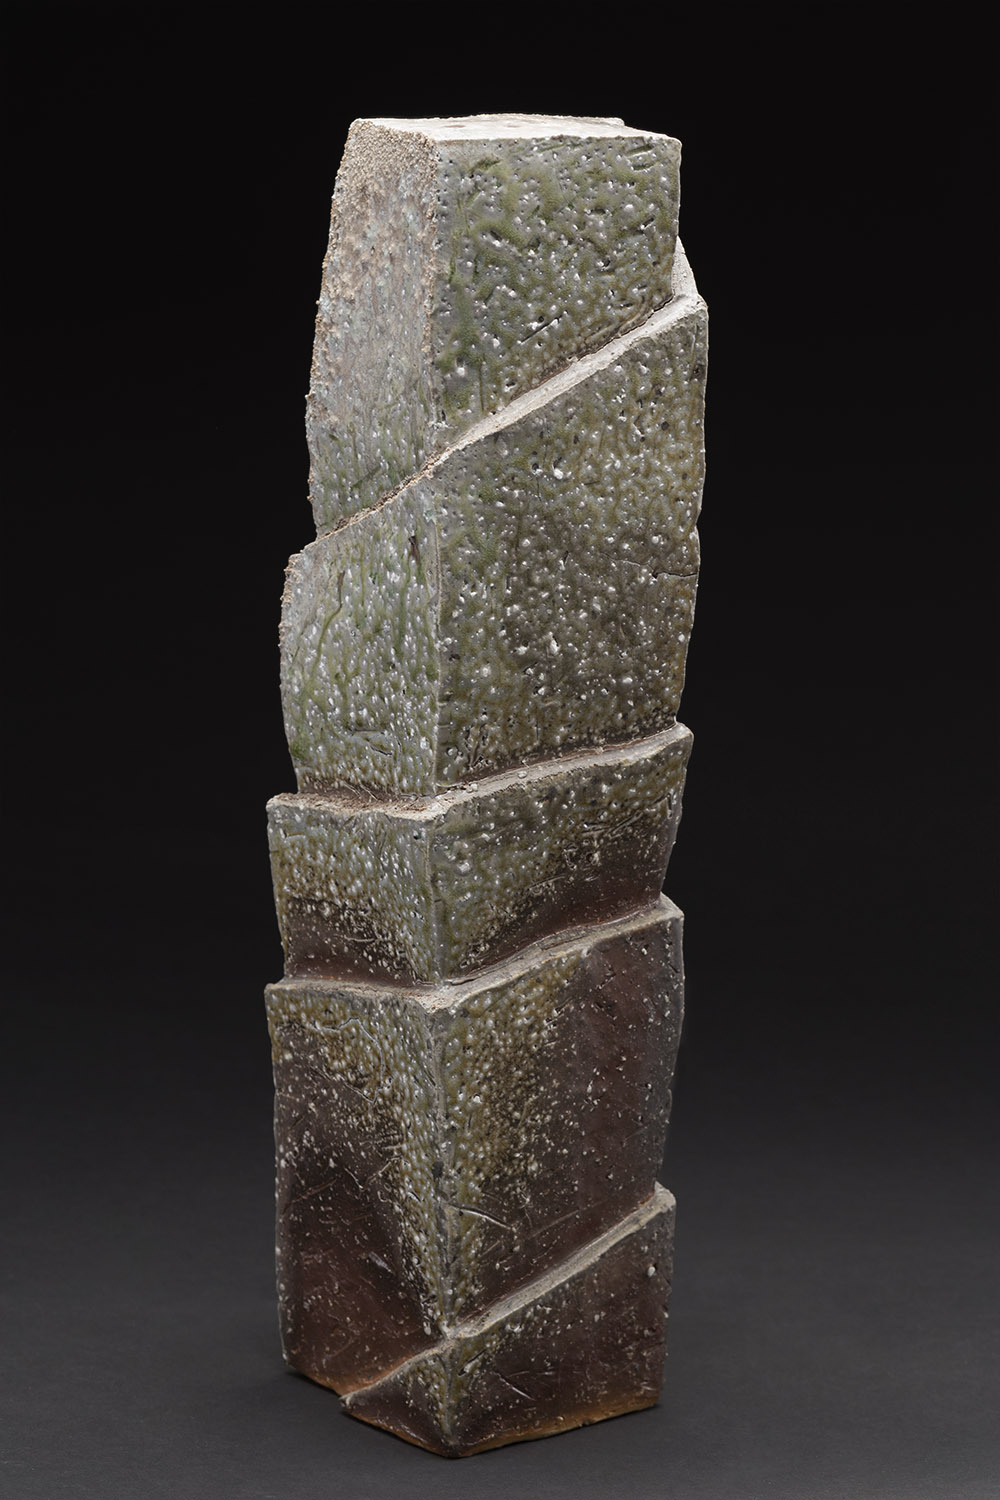 Tim Rowan    Untitled  , 2015 Ceramic 18 x 4.25 x 4.25 inches 45.7 x 10.8 x 10.8 cm TR 158